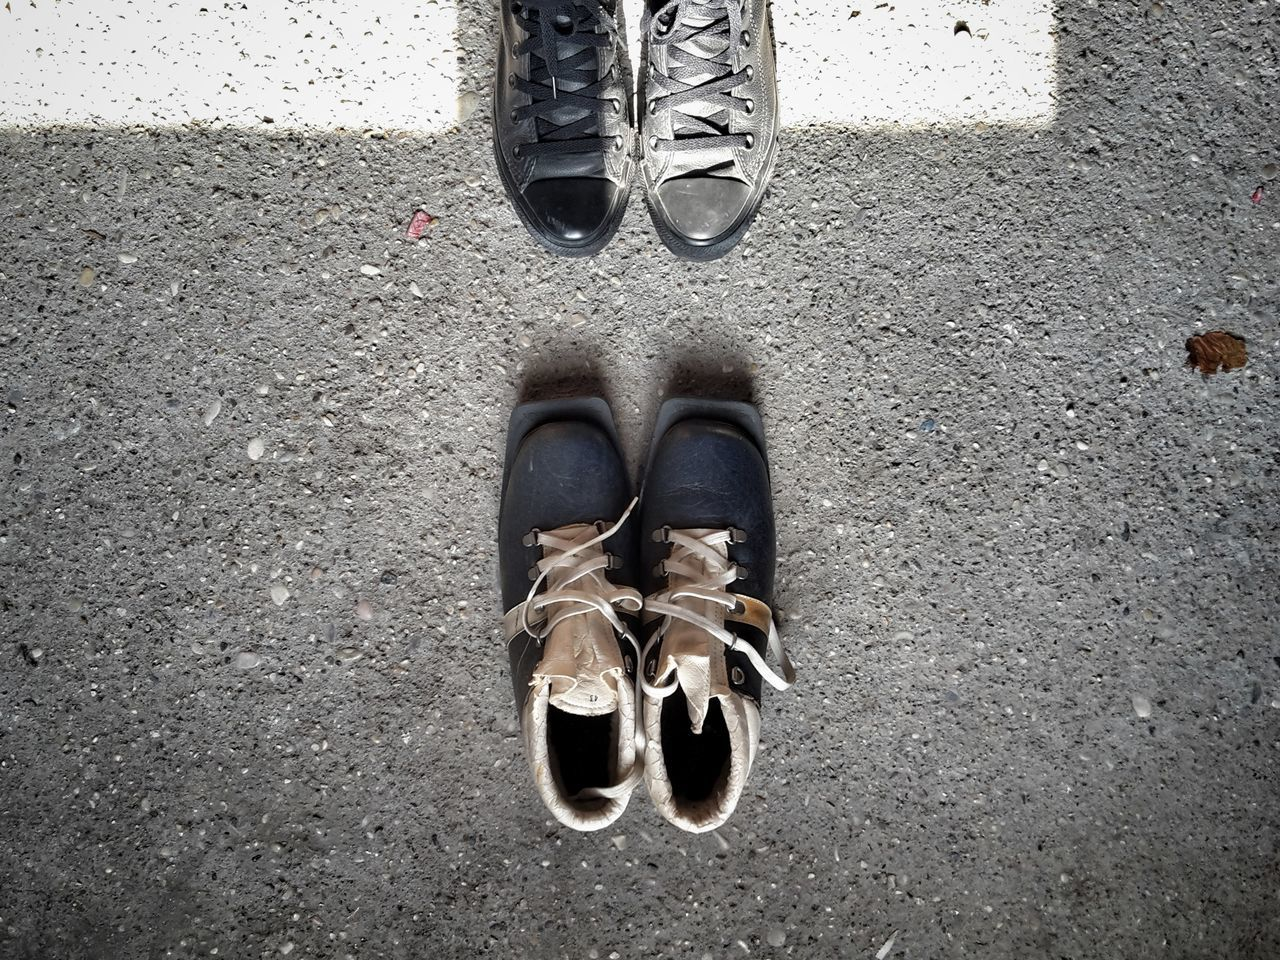 Shall we go to ski in the 70's? | Old Shoes Ski Low Section Standing Uniqueness Abstract My Converse Light And Shadow Pair Day Close-up People Shadow Winter Morning Personal Perspective Still Life Illuminated In The Attic Lieblingsteil In My Grandparents Attic EyeEm Italy |